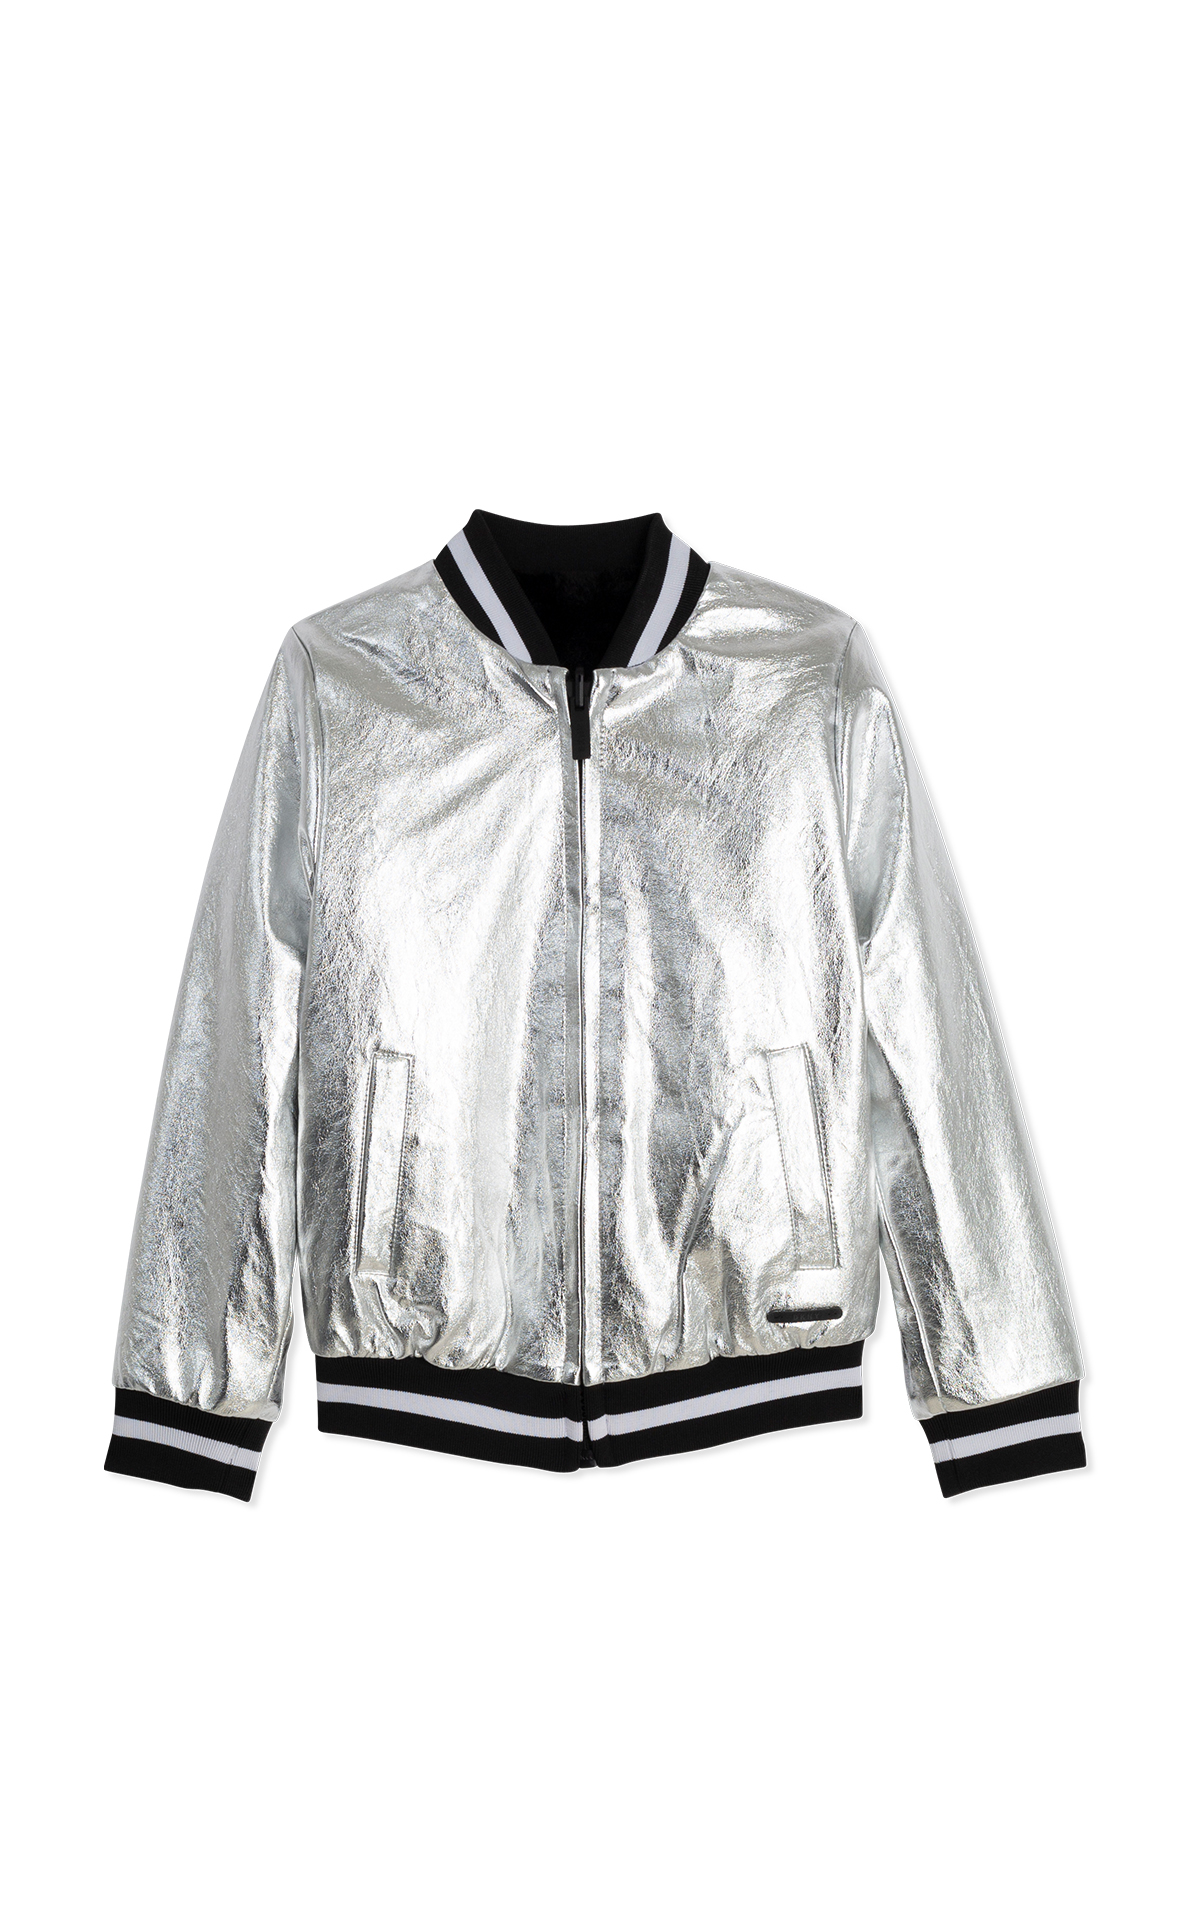 DKNY Kids Silver jacket La Vallée Village